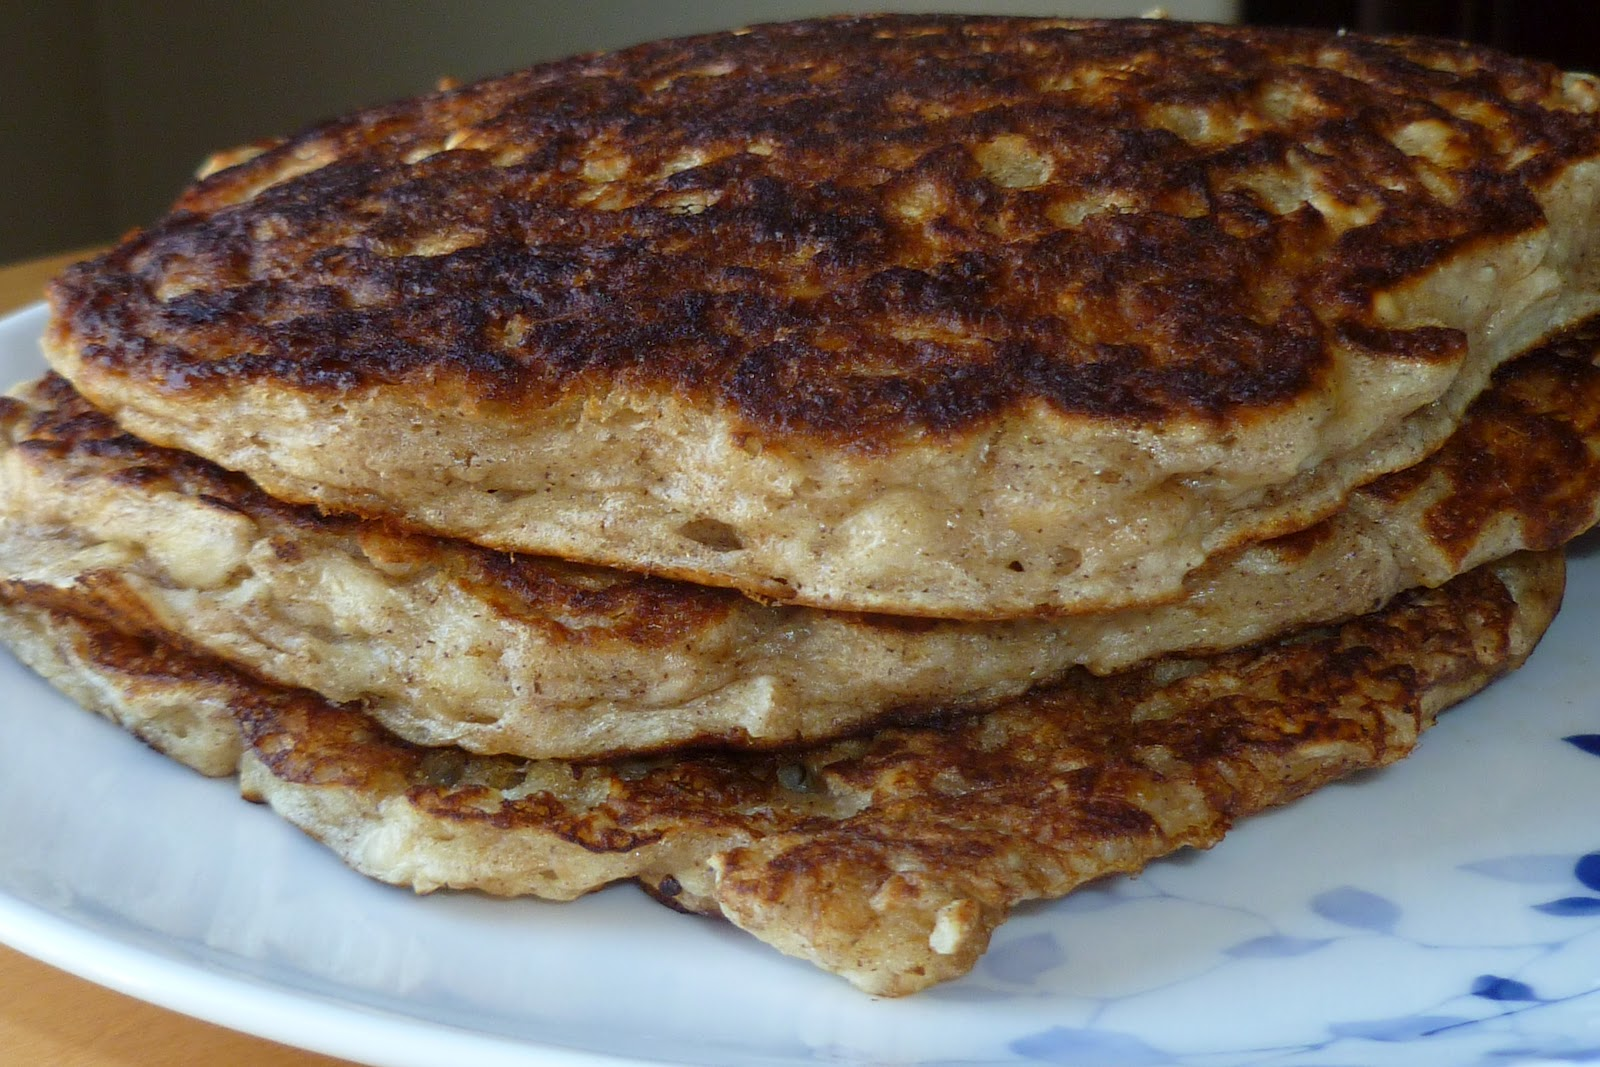 The Pastry Chef's Baking: Old-fashioned Oatmeal Pancakes